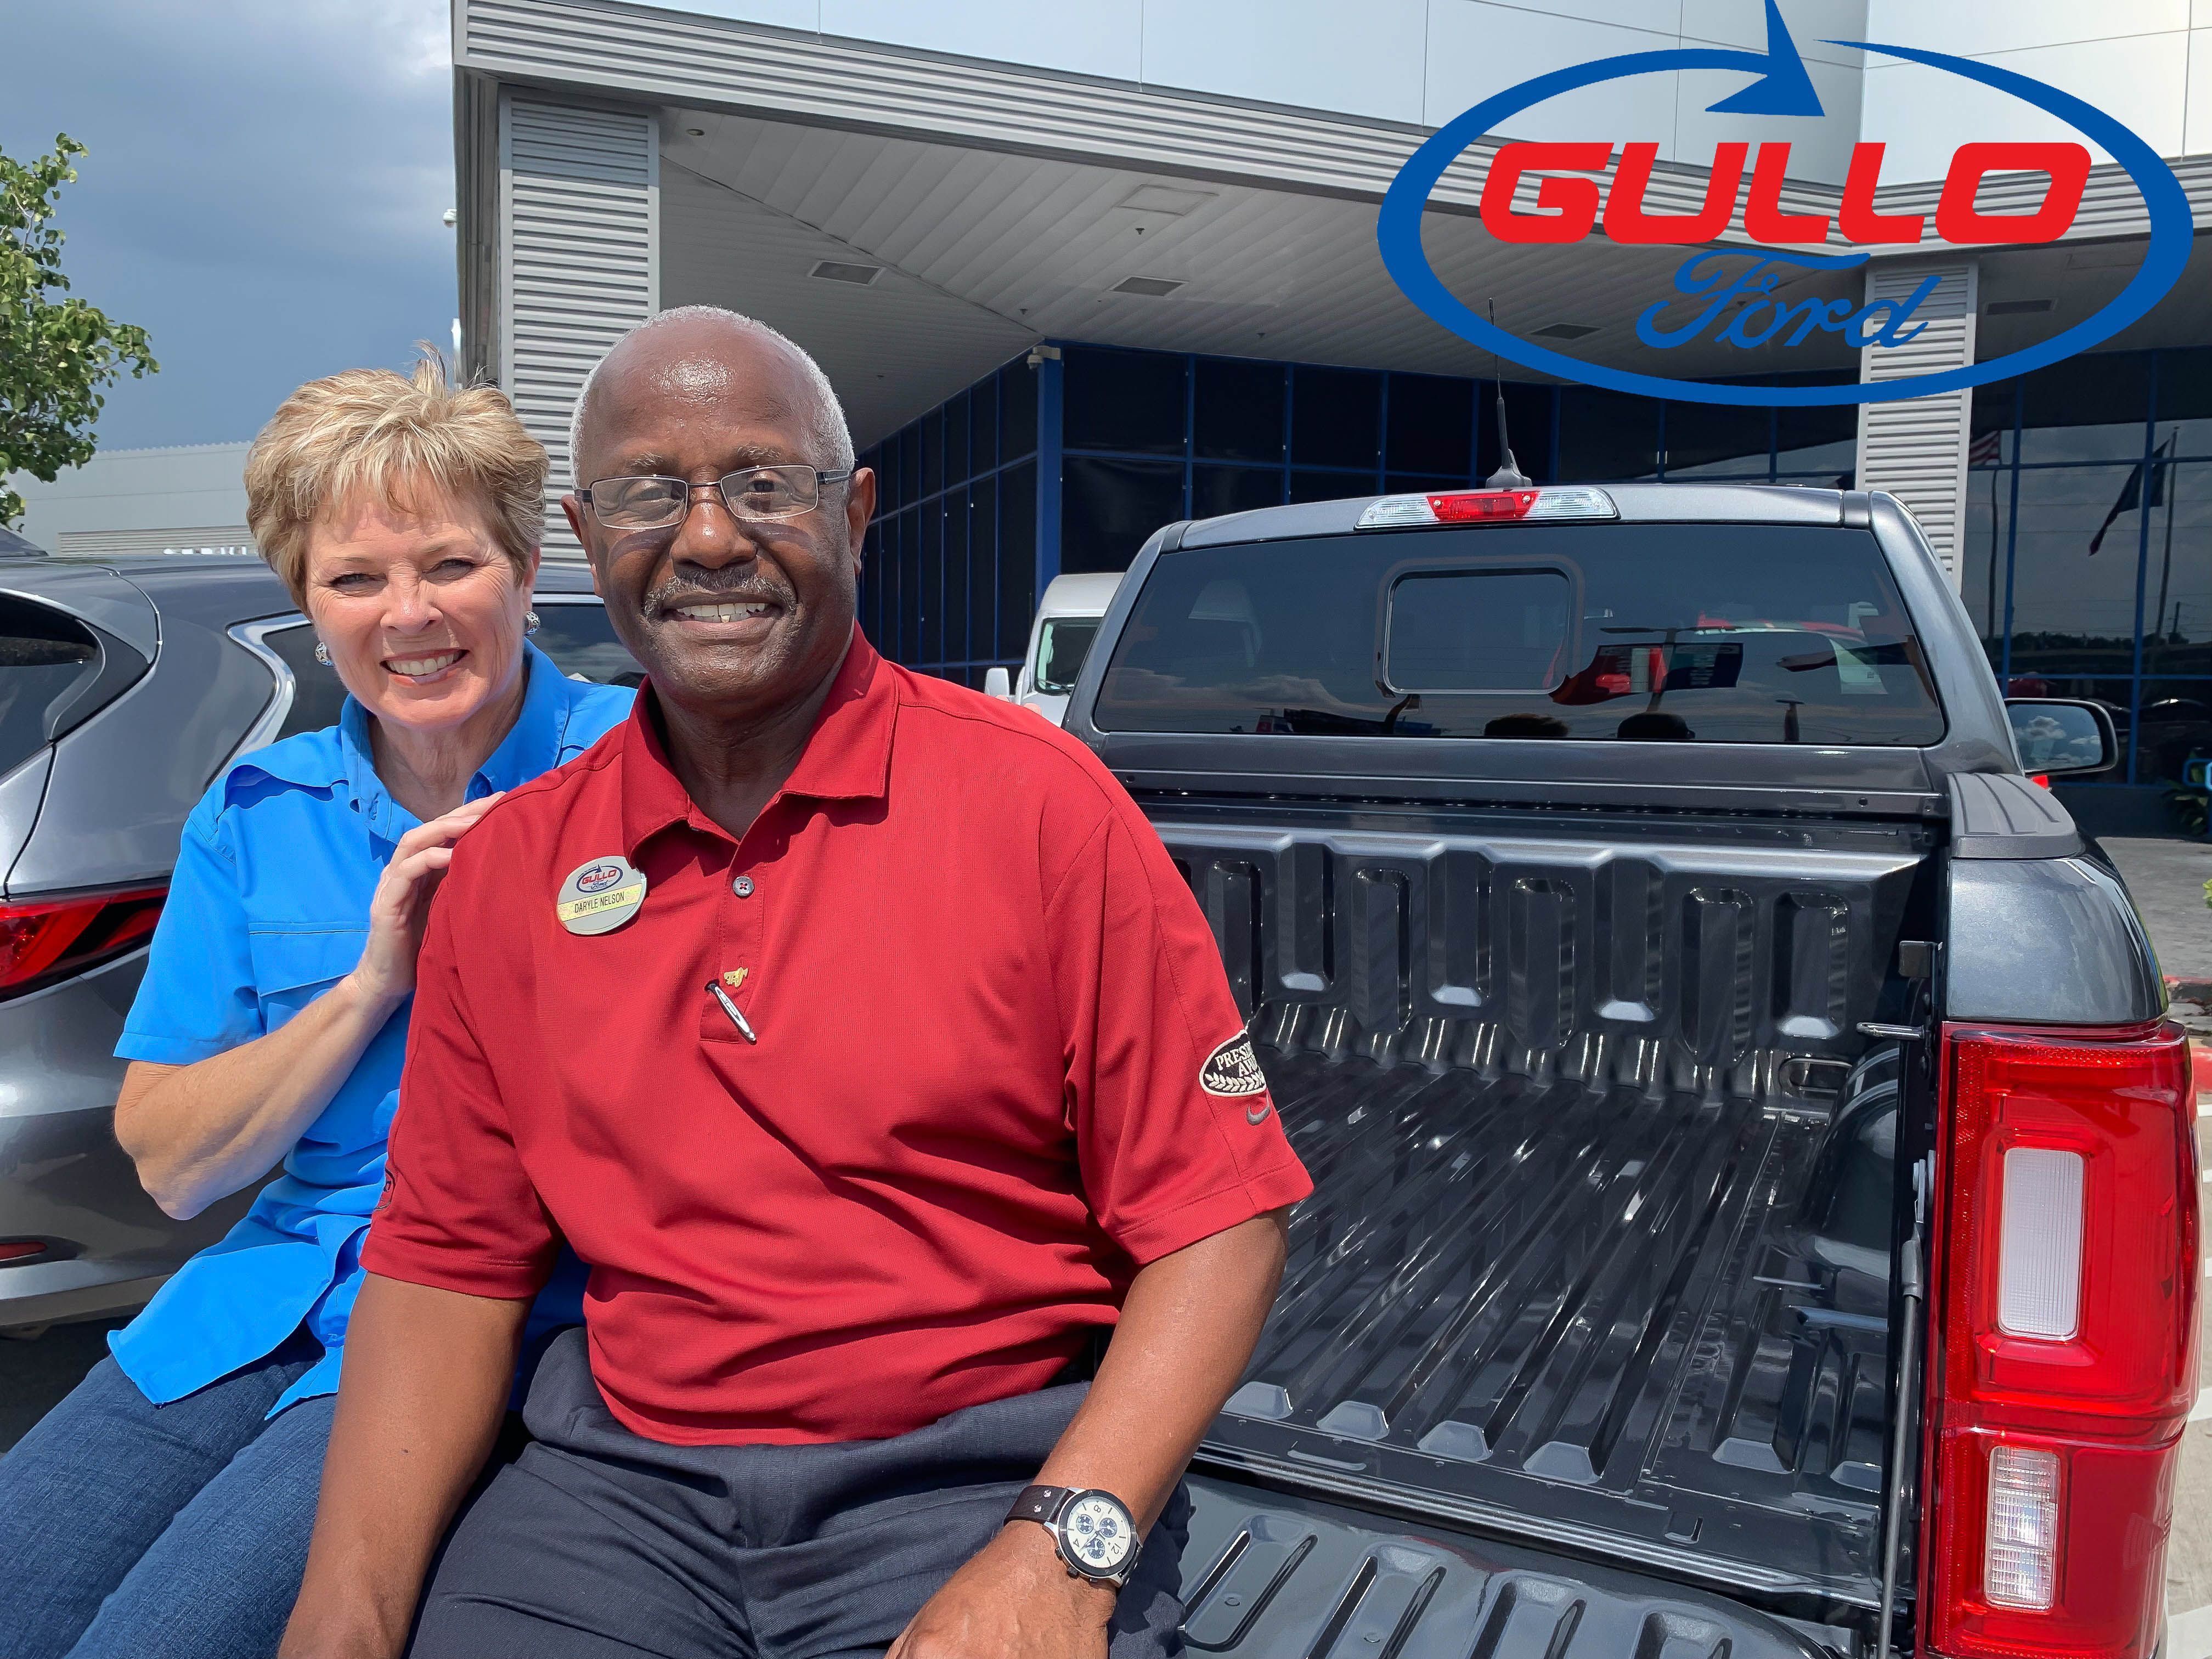 Pin by Gullo Ford of Conroe on Happy Customers! Ford